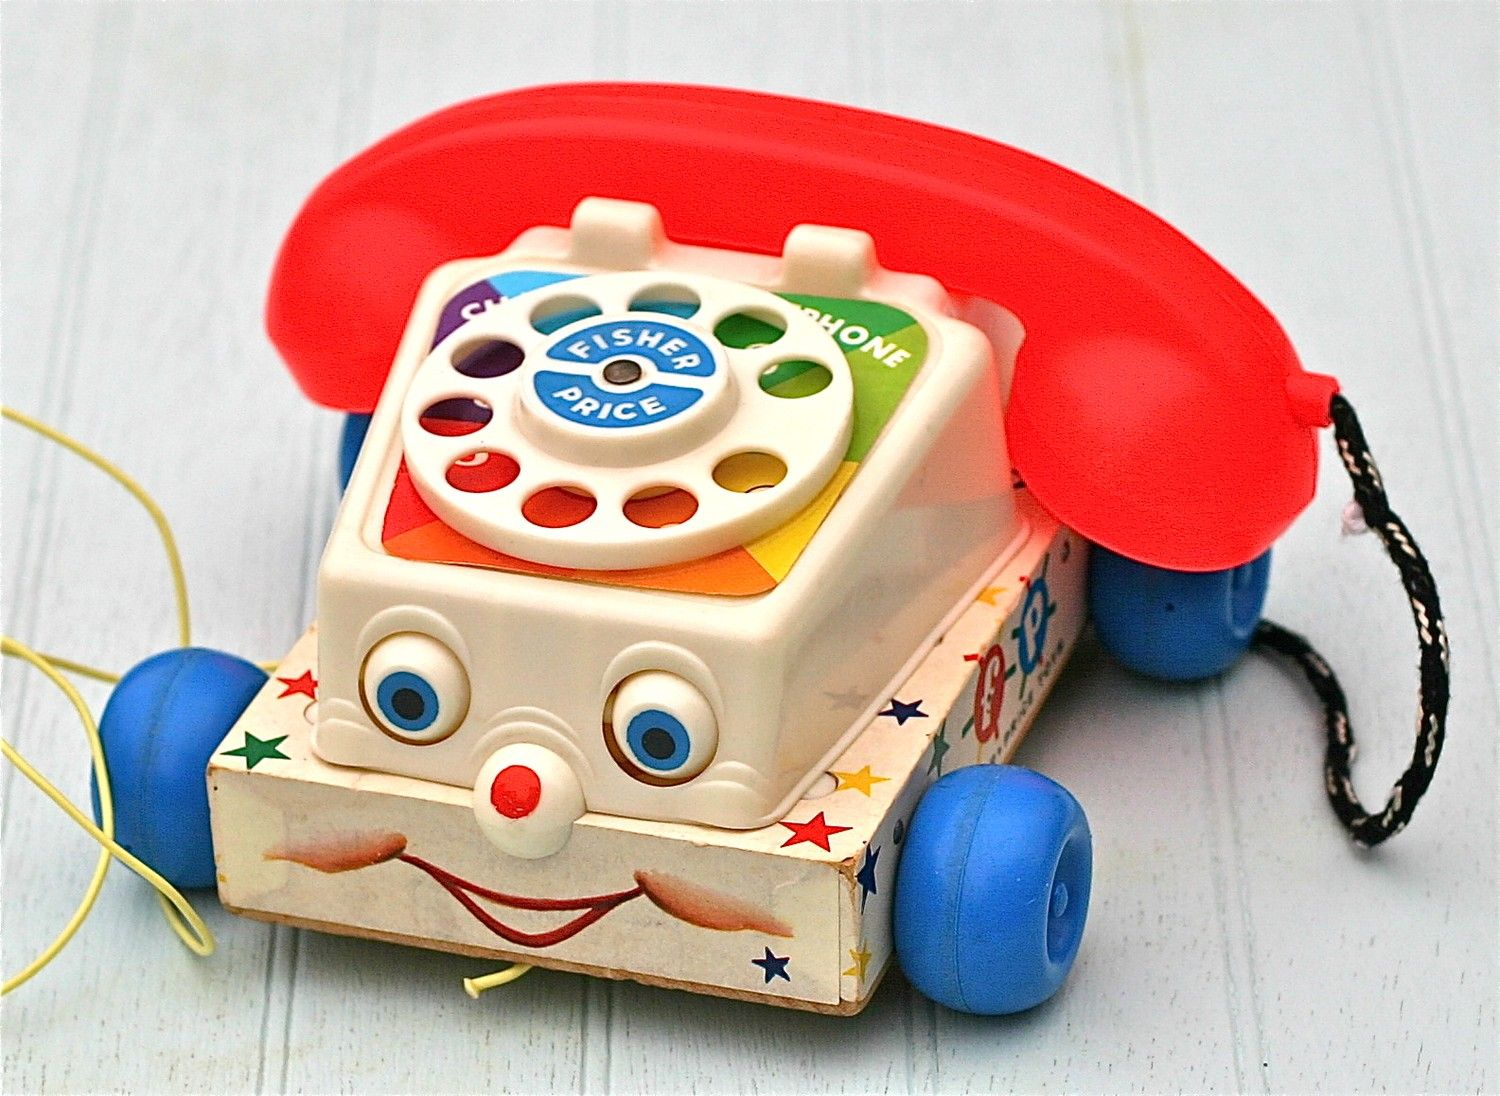 chatter telephone nostalgia pinterest fisher price vintage fisher price and nostalgia. Black Bedroom Furniture Sets. Home Design Ideas